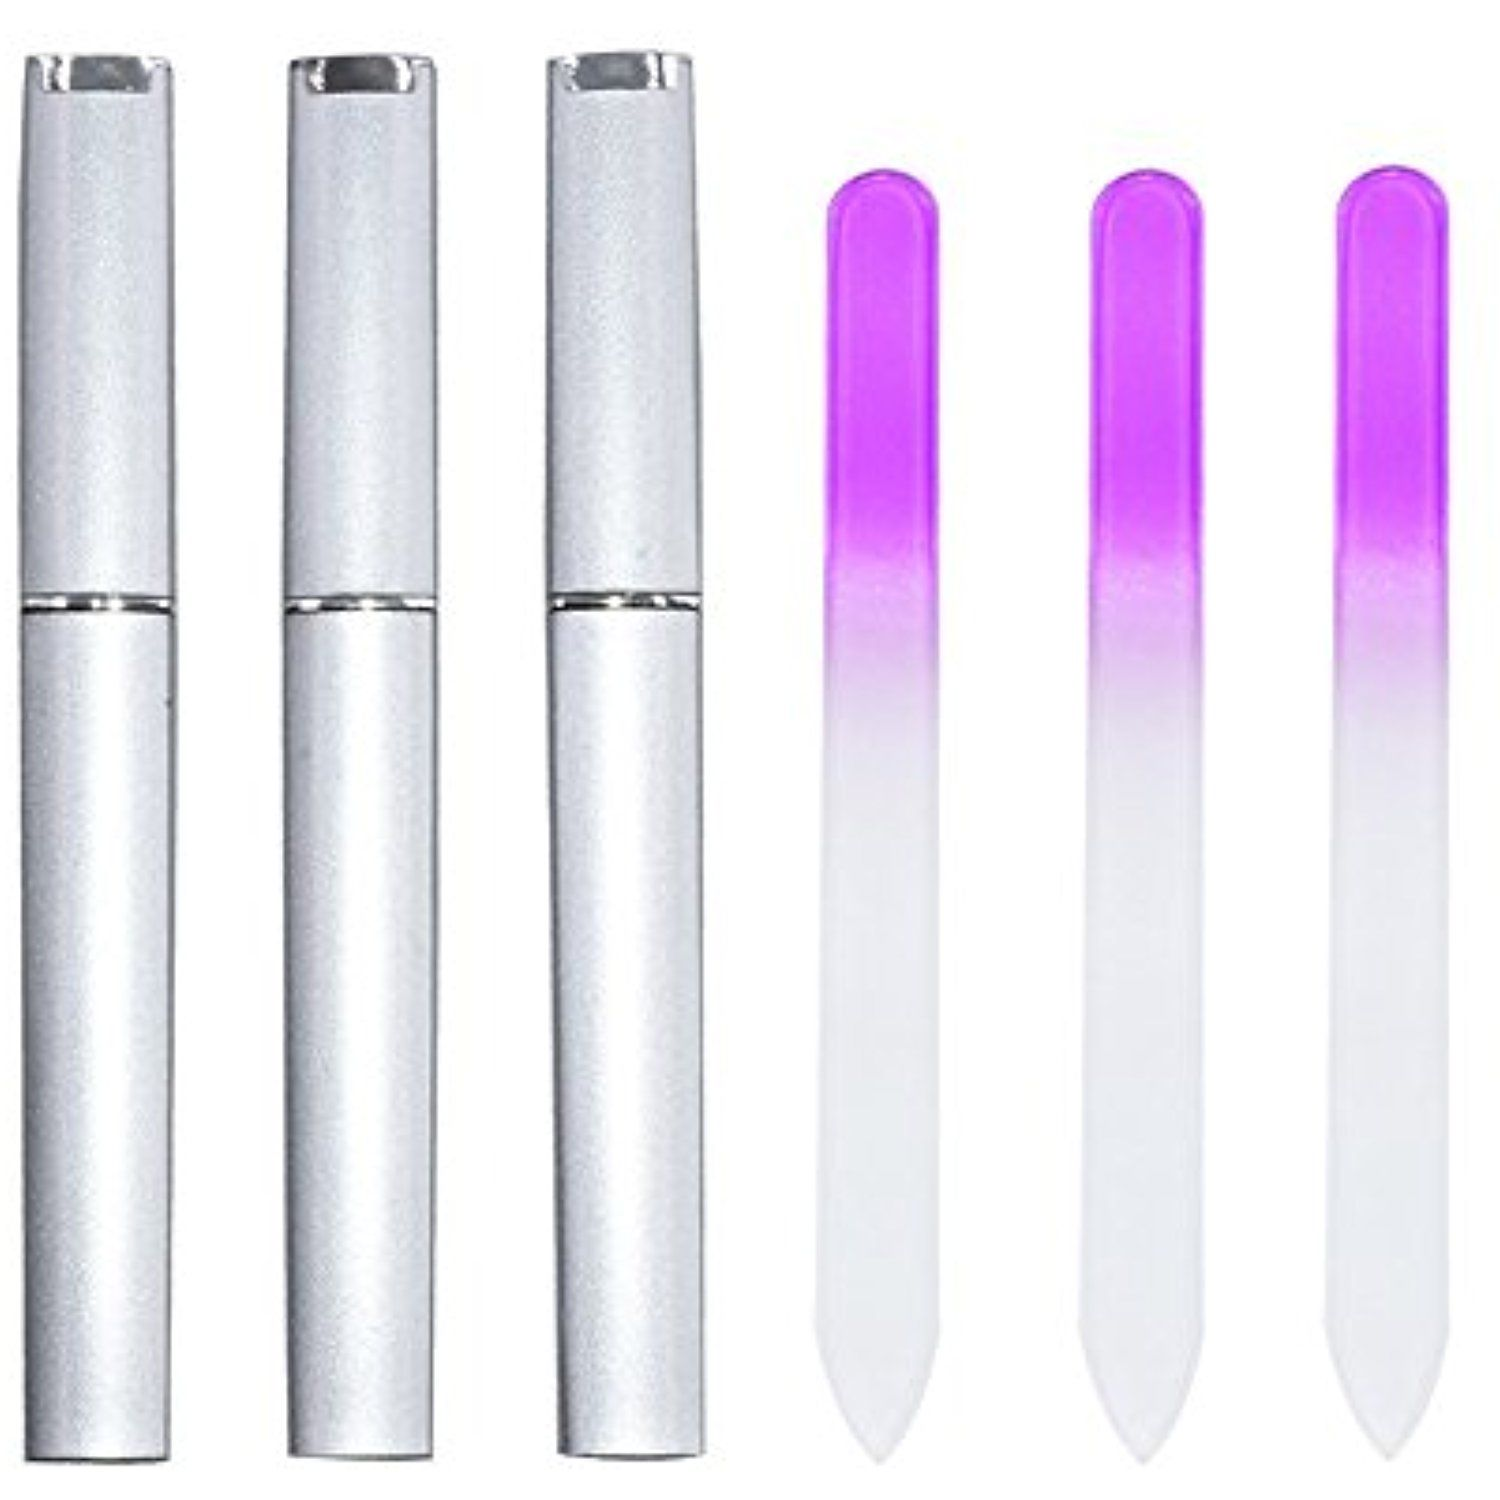 Linkcool 3 Pieces Crystal Glass Nail Files with Protective Cases ...